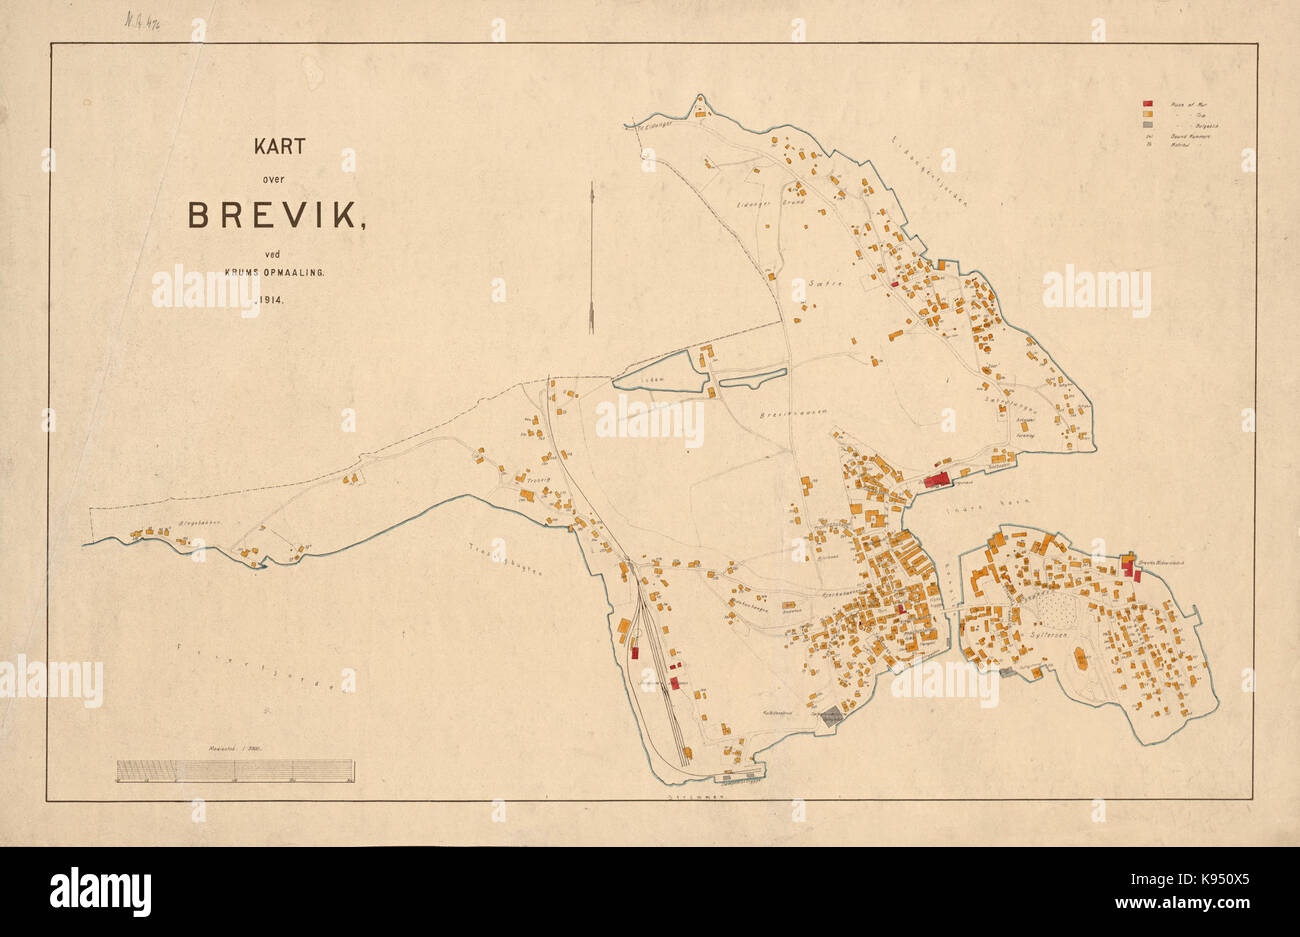 kart over brevik Kart over Brevik 1914 No nb krt 01283 Stock Photo: 160535709   Alamy kart over brevik